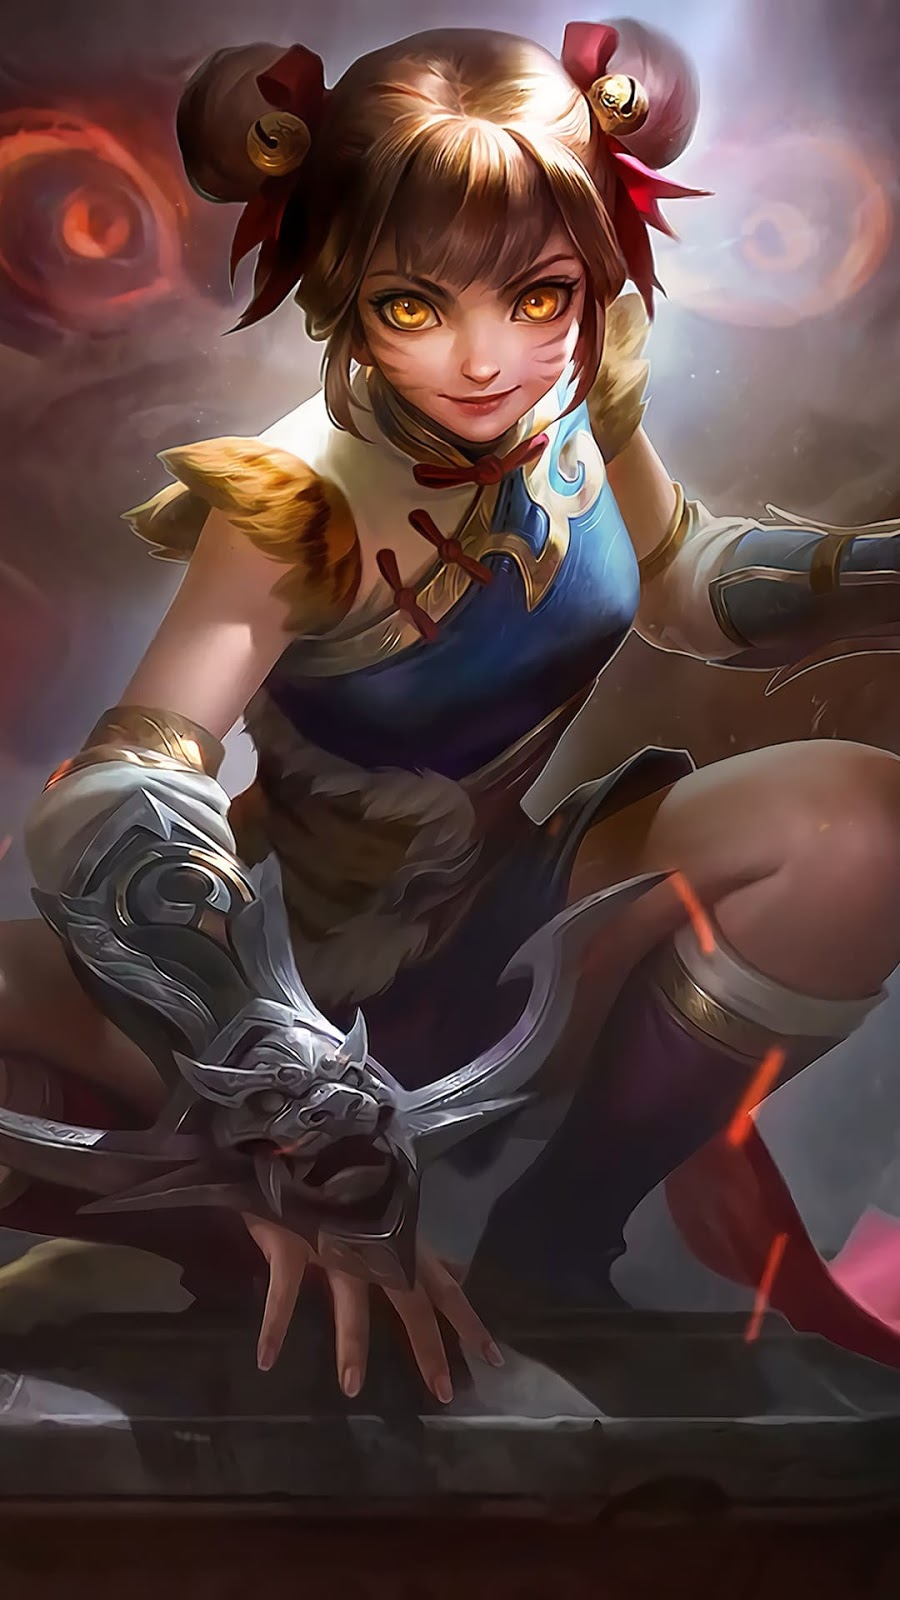 Wallpaper Wanwan Agile Tiger Skin Mobile Legends HD for Android and iOS